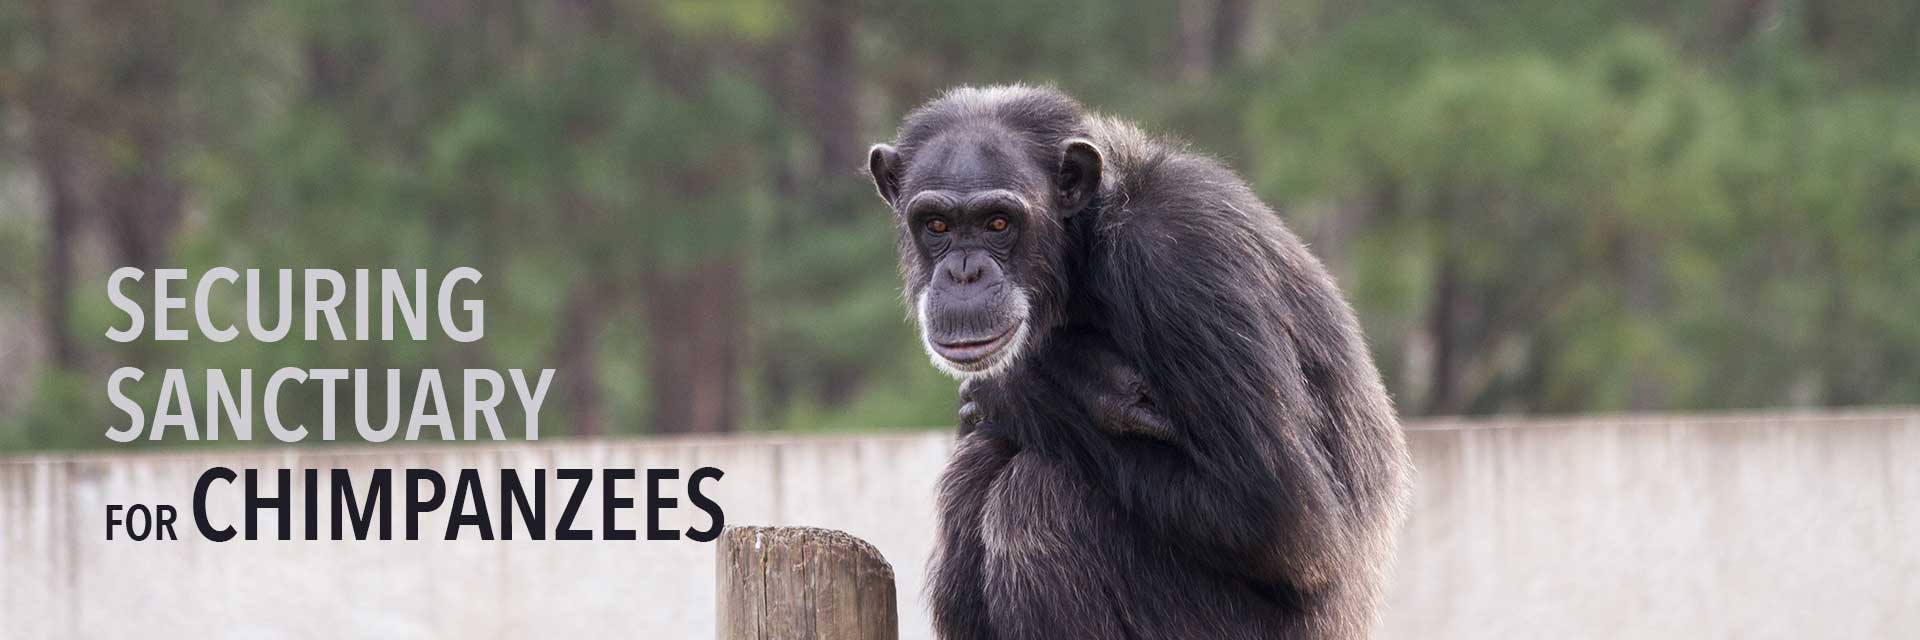 Securing Sanctuary for Chimpanzees